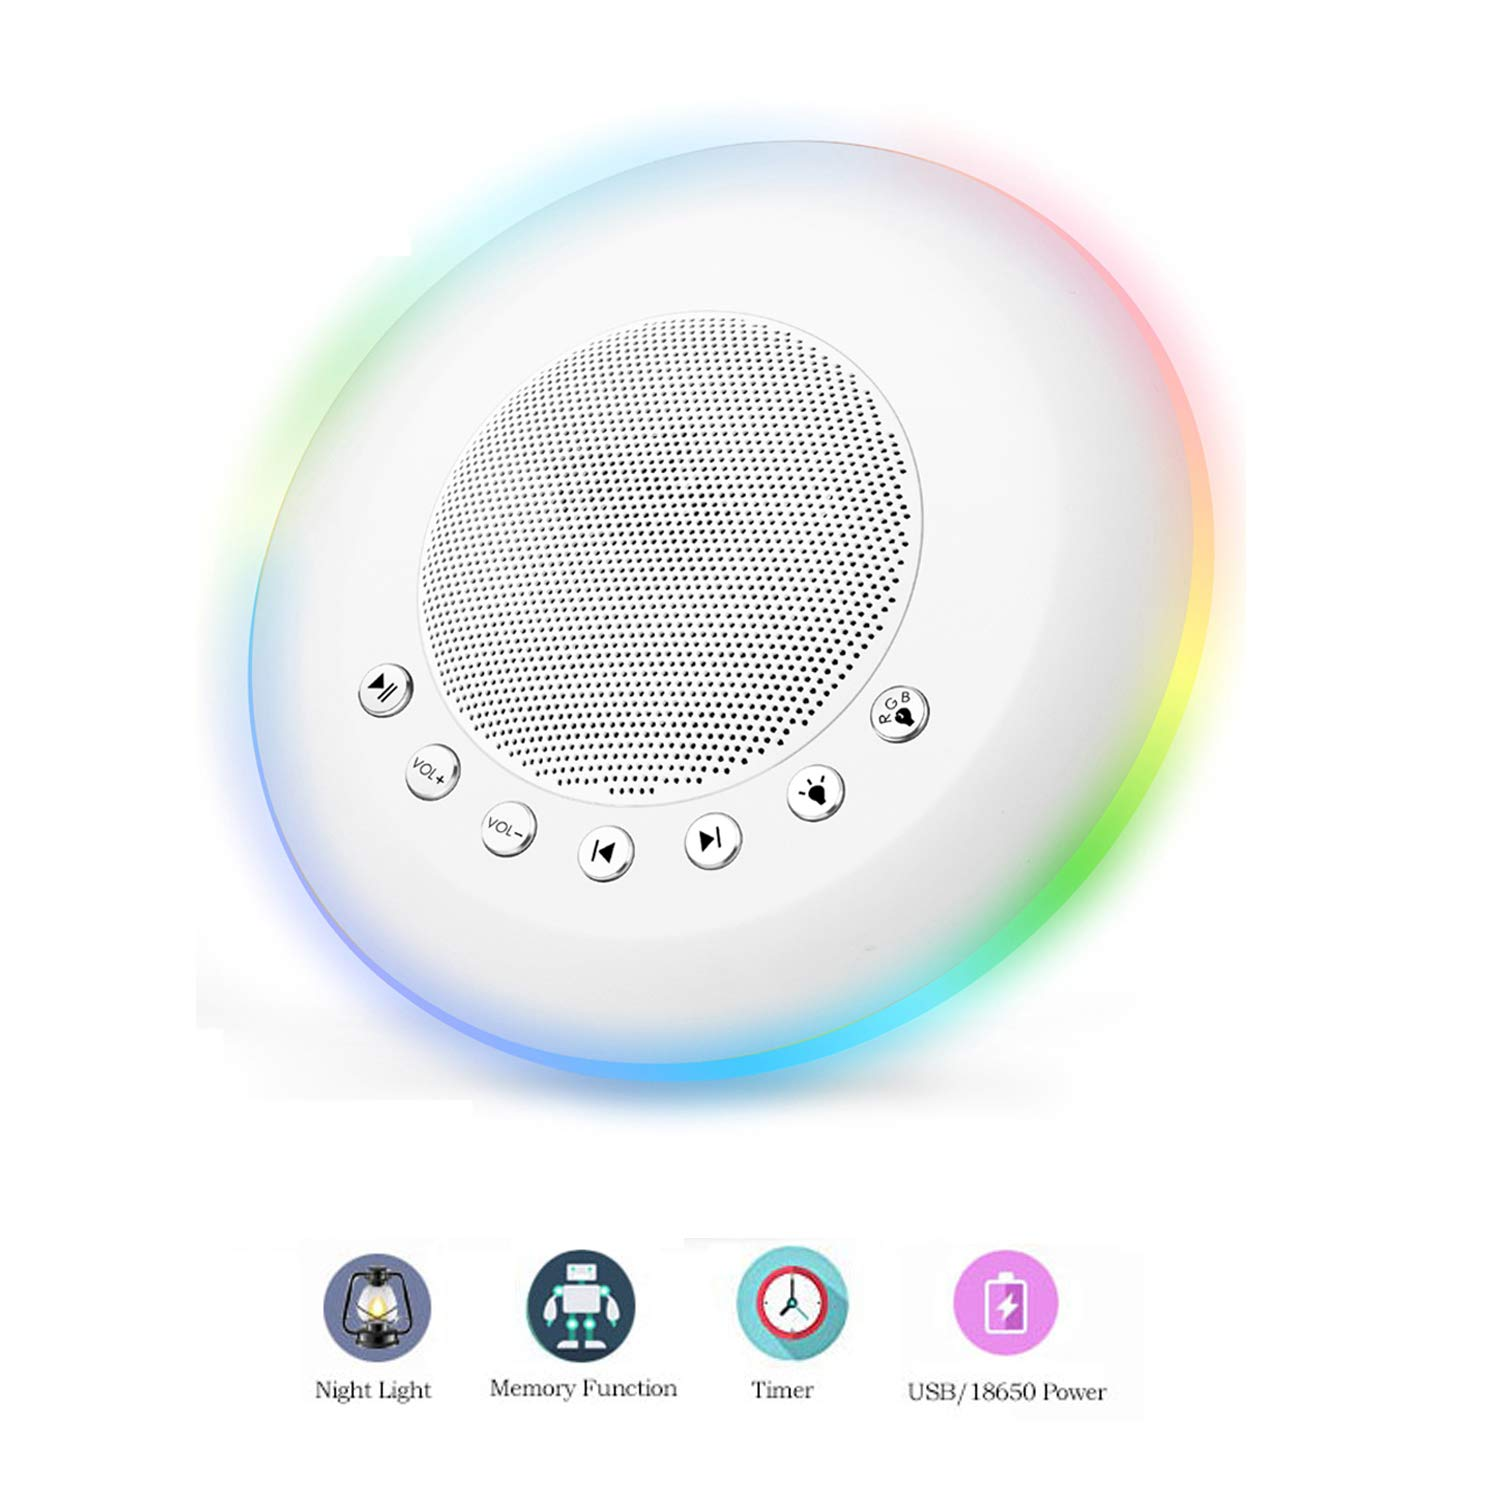 Sound Machine - White Noise Machine for Sleeping, with LED Colorful Night Light 20 Soothing HiFi Sounds, Continuous or Timer, Rechargeable Battery or USB Output Charger by EliveBuy (Image #1)